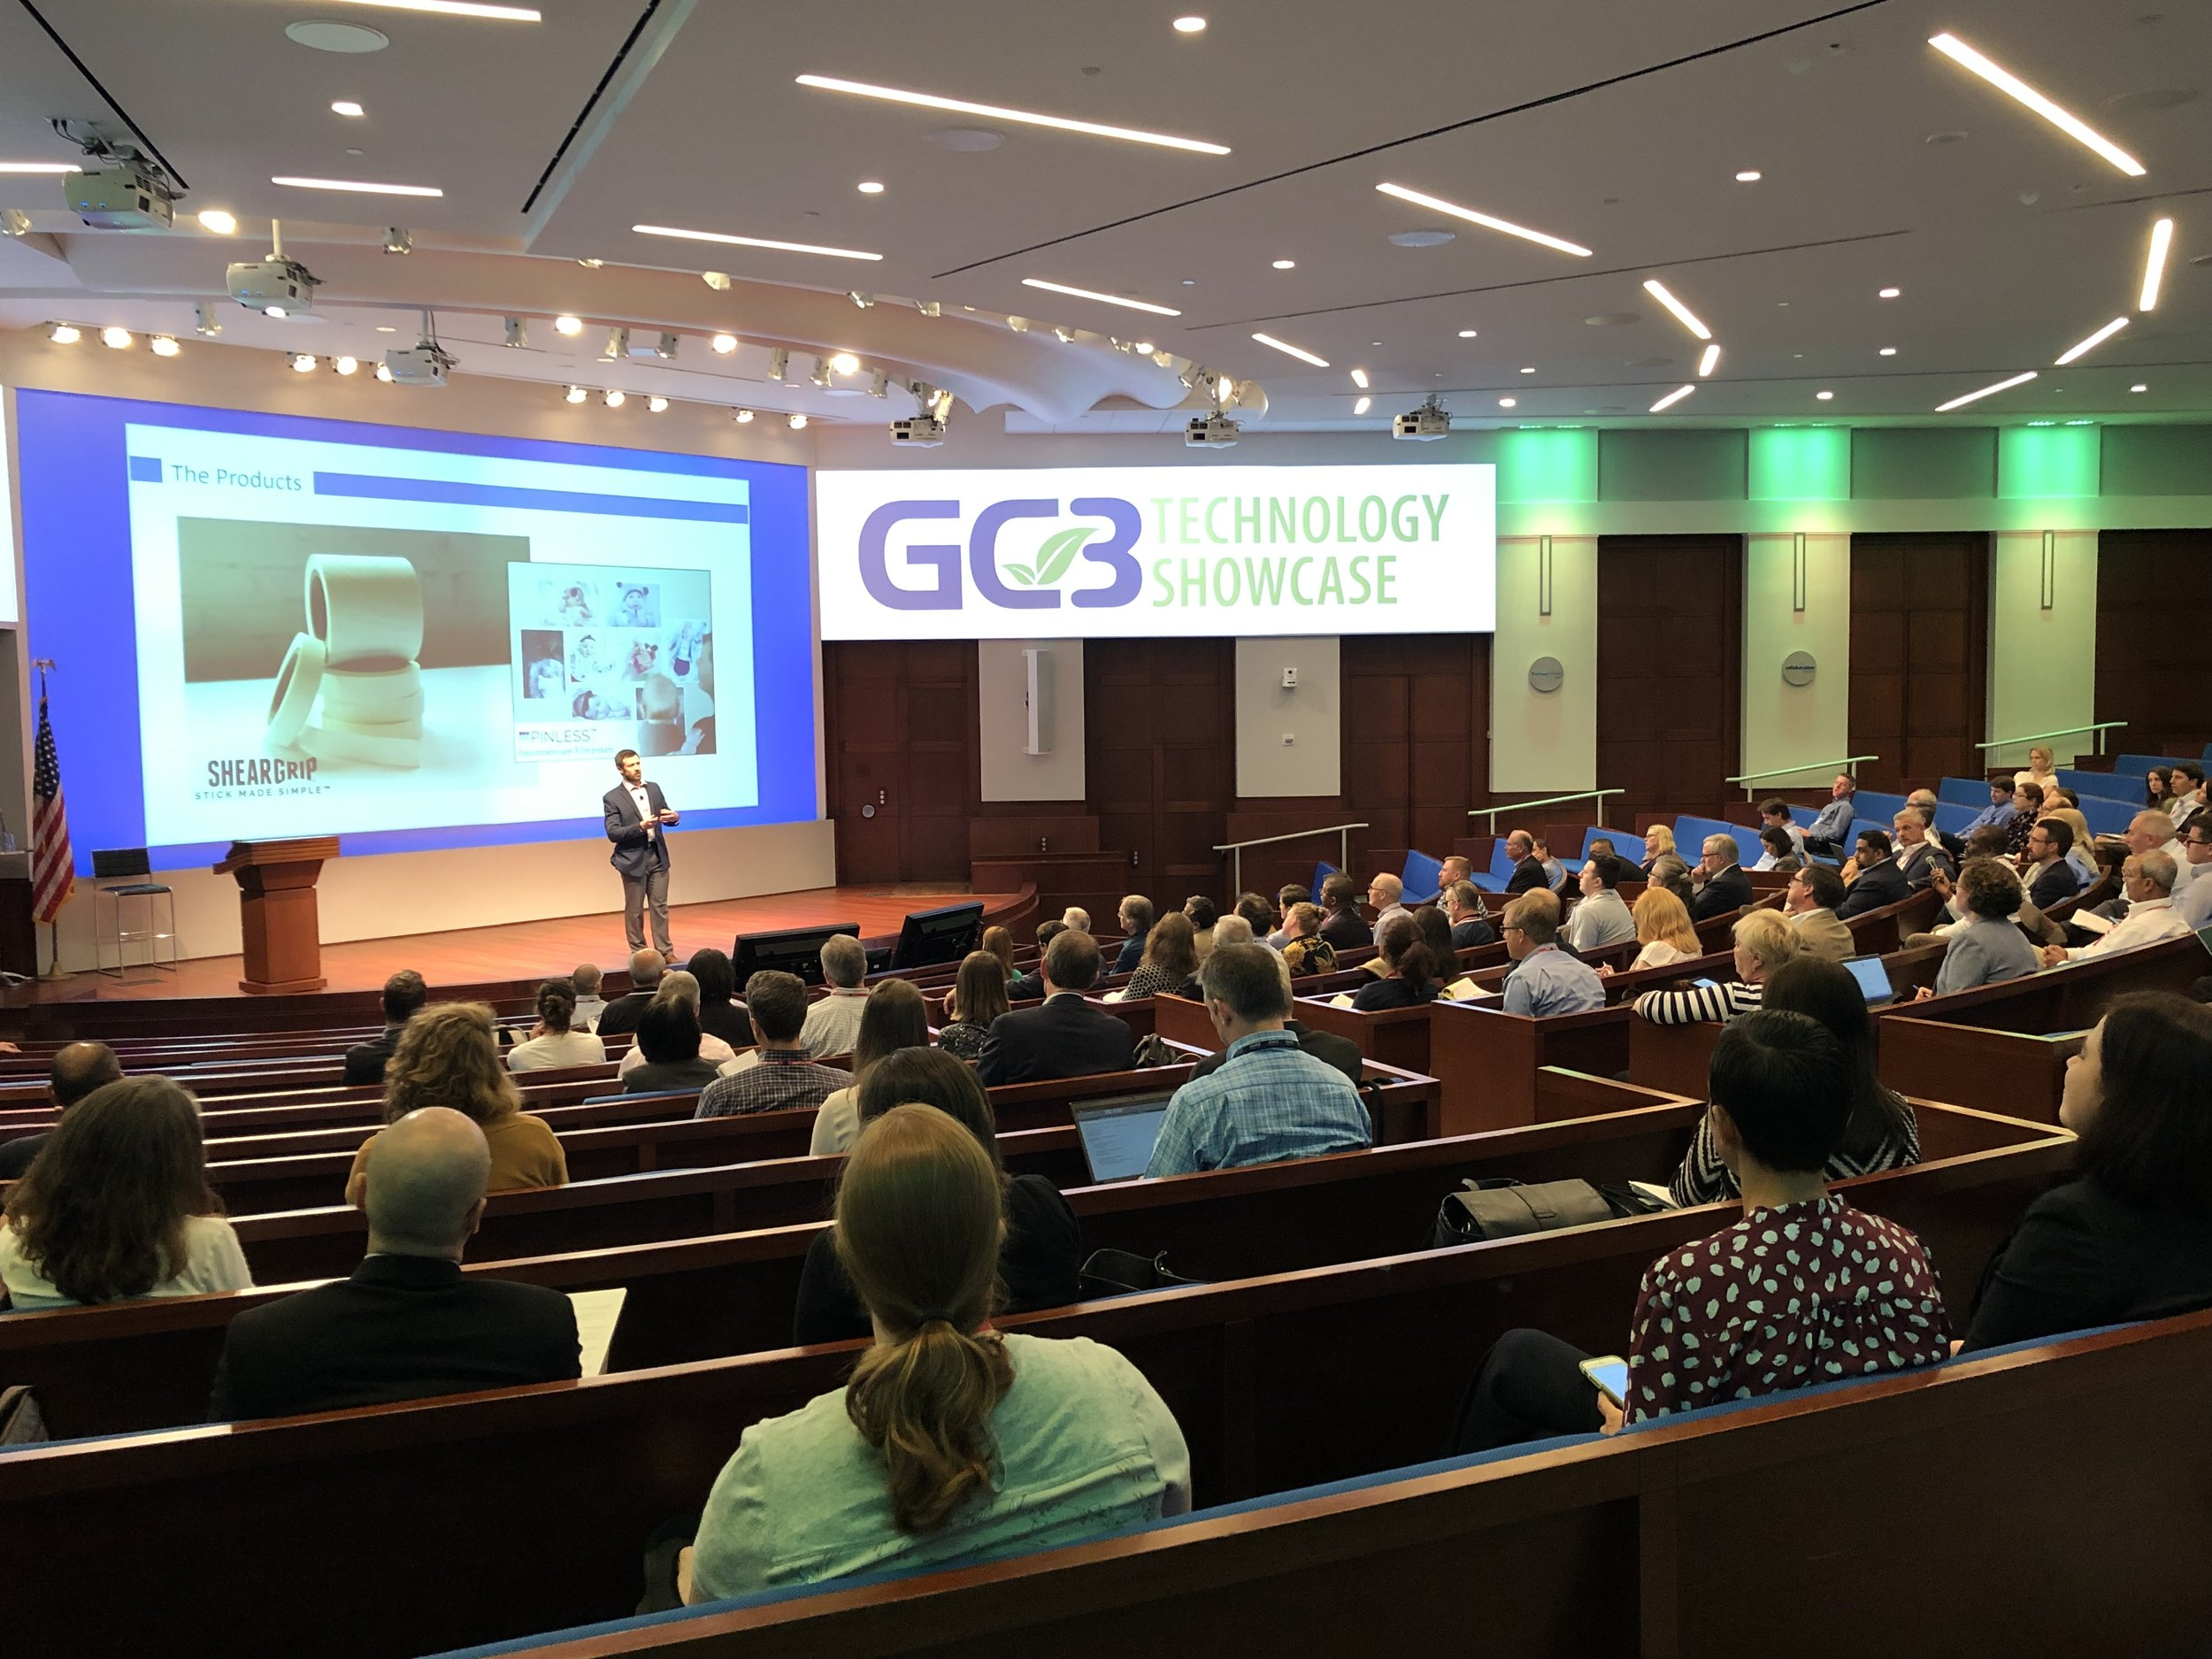 AAI's COO and Principal Scientist Kevin White delivering a pitch at the Green Chemistry & Commerce Council's technology showcase, hosted this year by Procter & Gamble at their Cincinnati headquarters. AAI and our ShearGrip bio-inspired dry adhesive technology was selected from a pool of over 30 companies and took home the top prize.